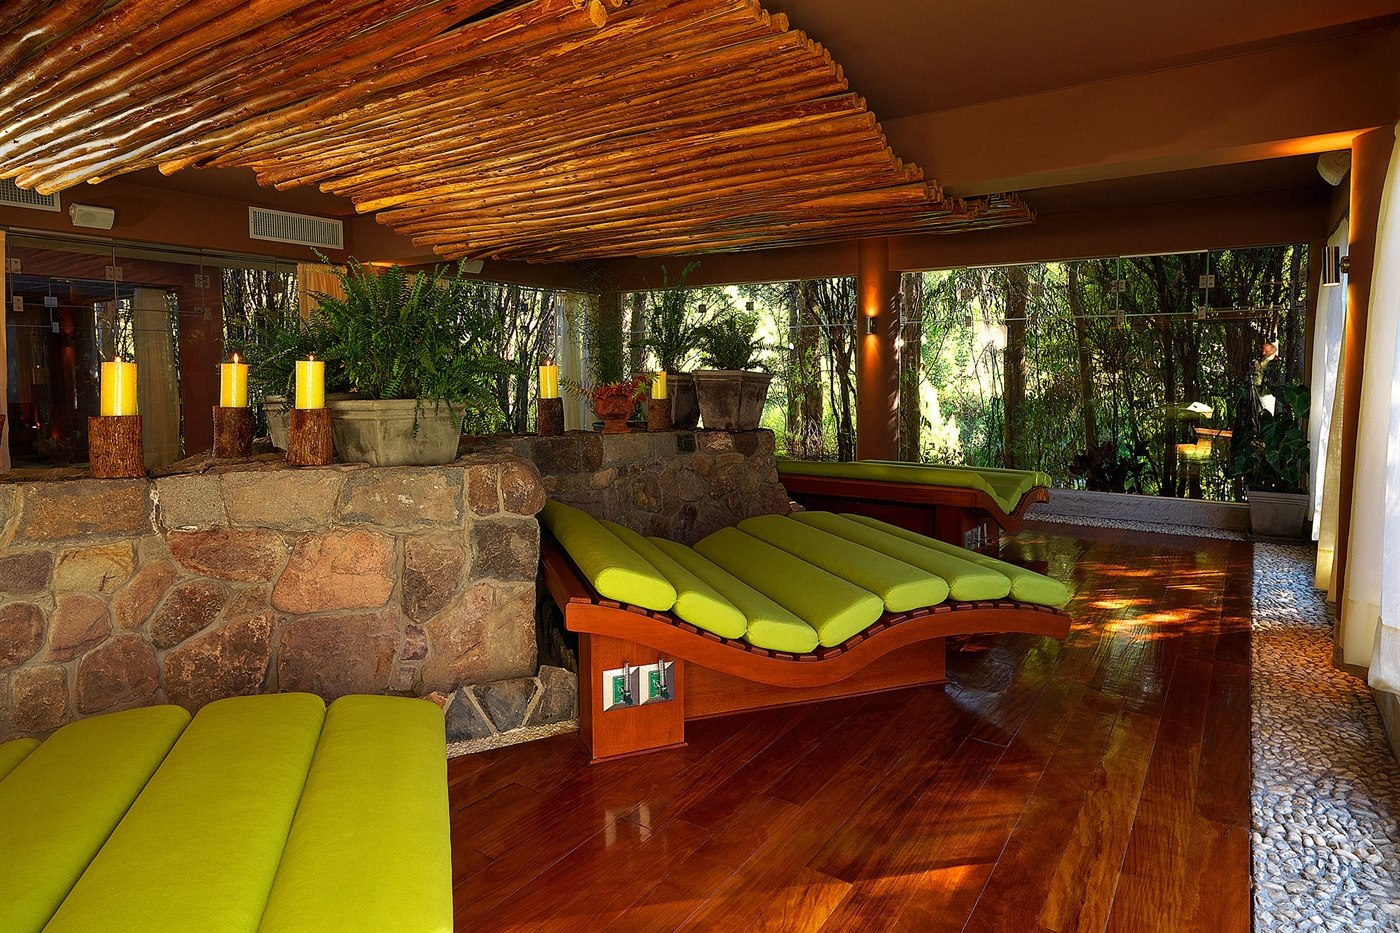 Unno Spa - Hall of Oxygen, Aranwa Sacred Valley